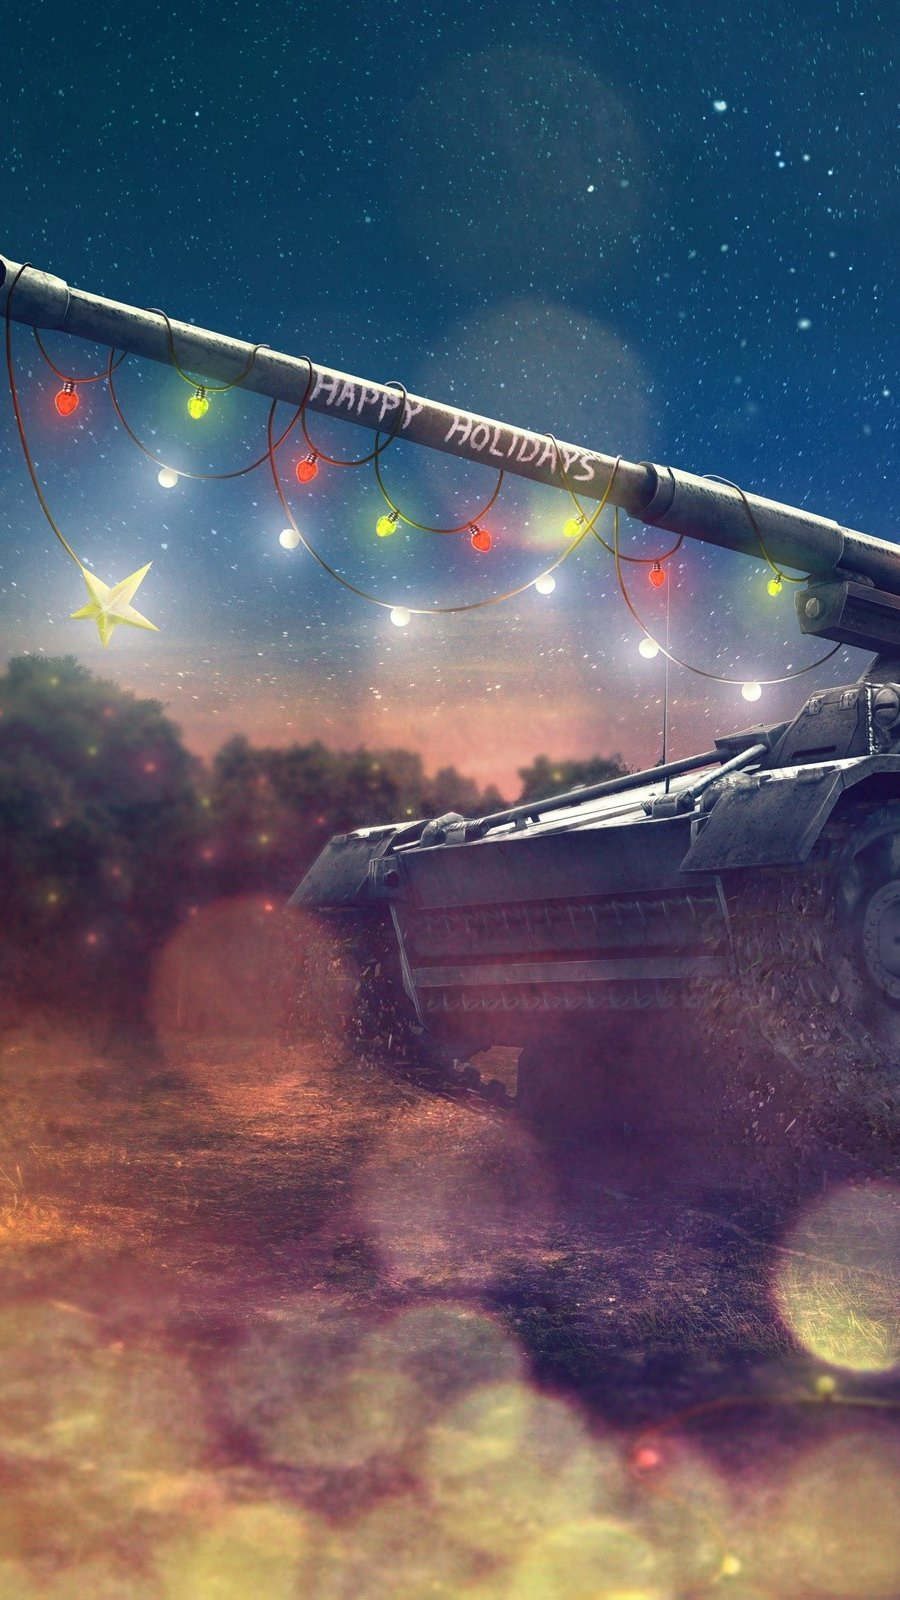 Wallpaper World of Tanks Holidays Vertical